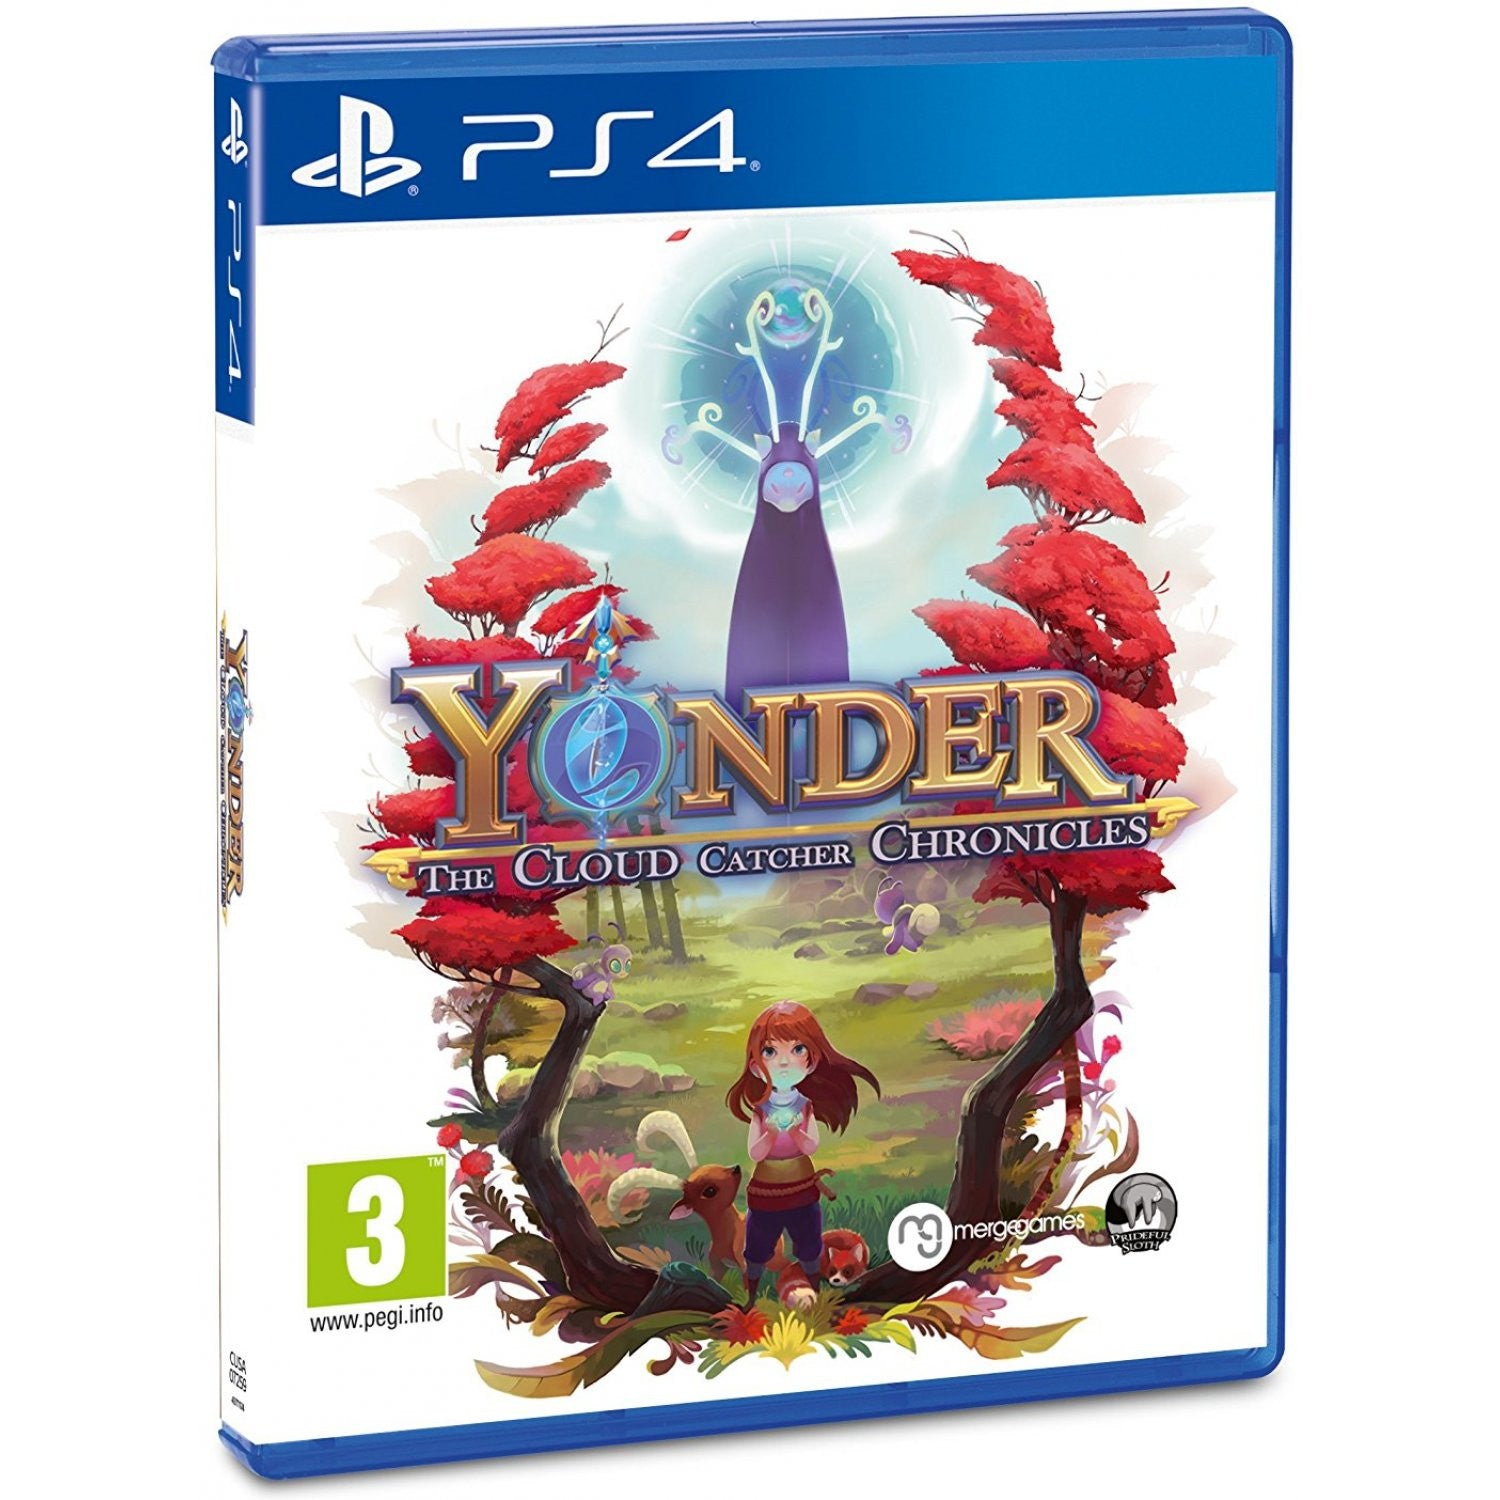 Sony Playstation 4 Tagged Ps4 Page 8 Kingdoms Heart 15 25 Remix Region 3 Yonder The Cloud Catcher Chronicle